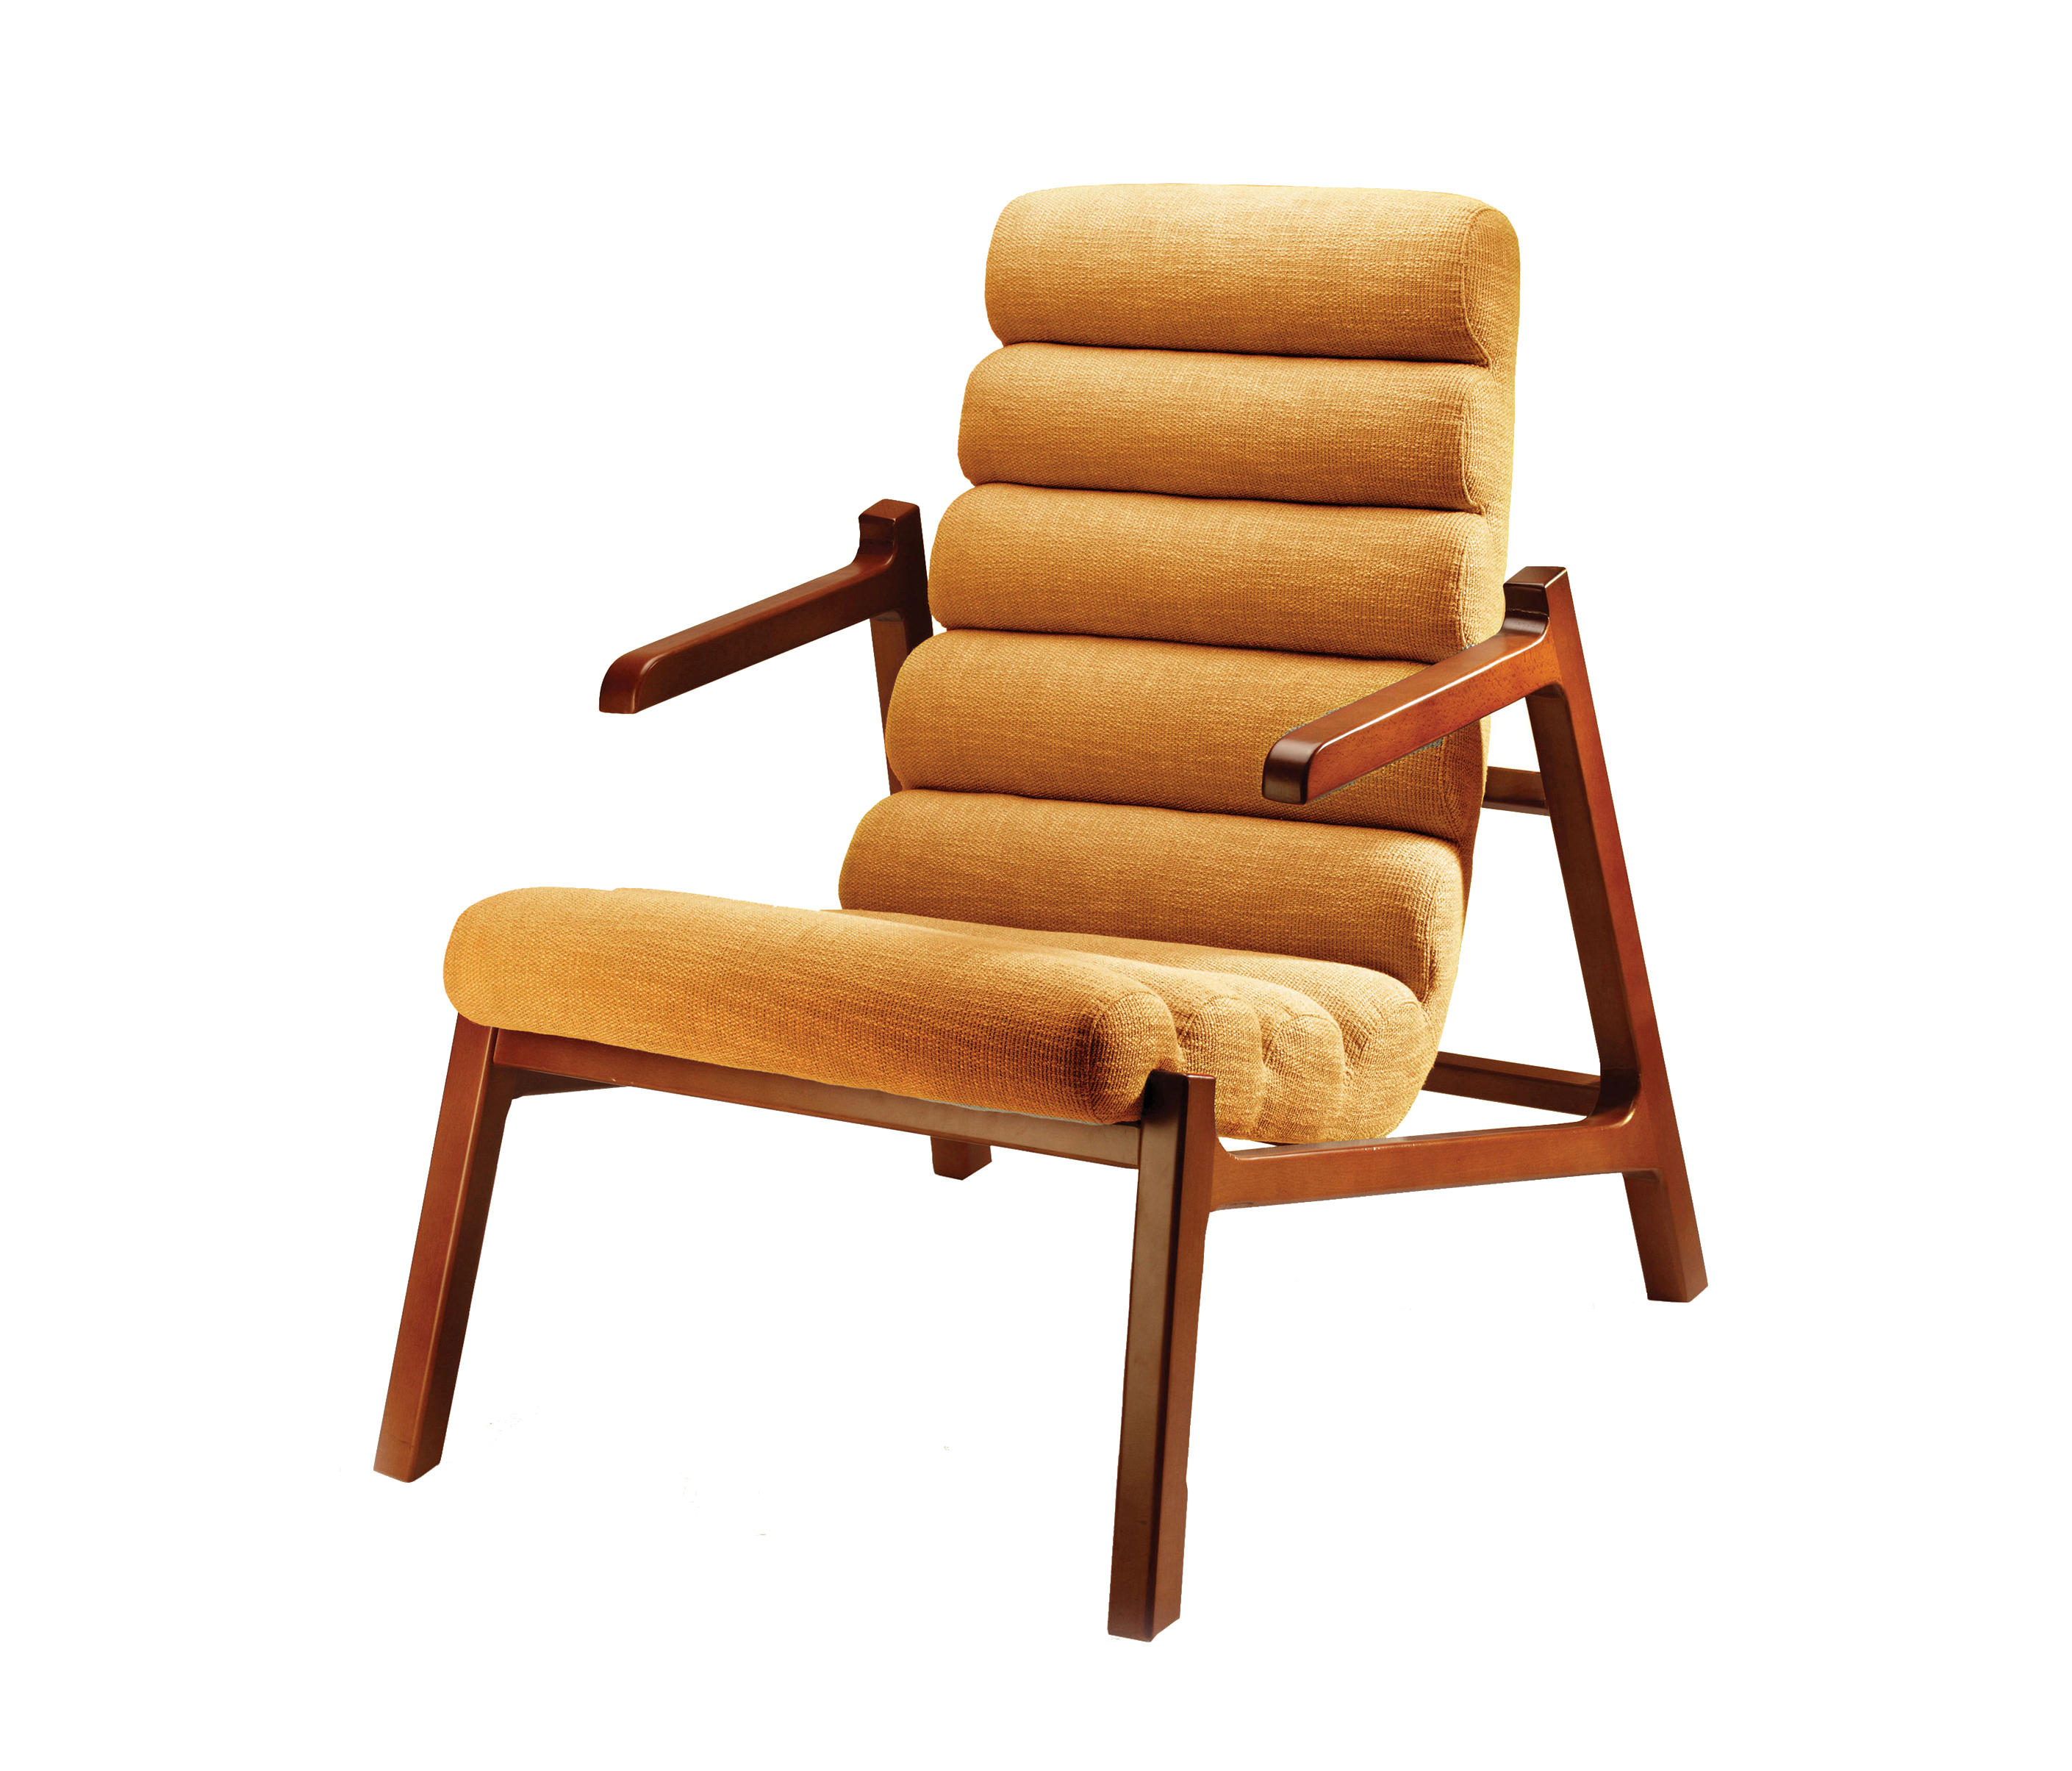 Easy Armchair Lounge Chairs From Mambo Unlimited Ideas Architonic # Wittmann Muebles